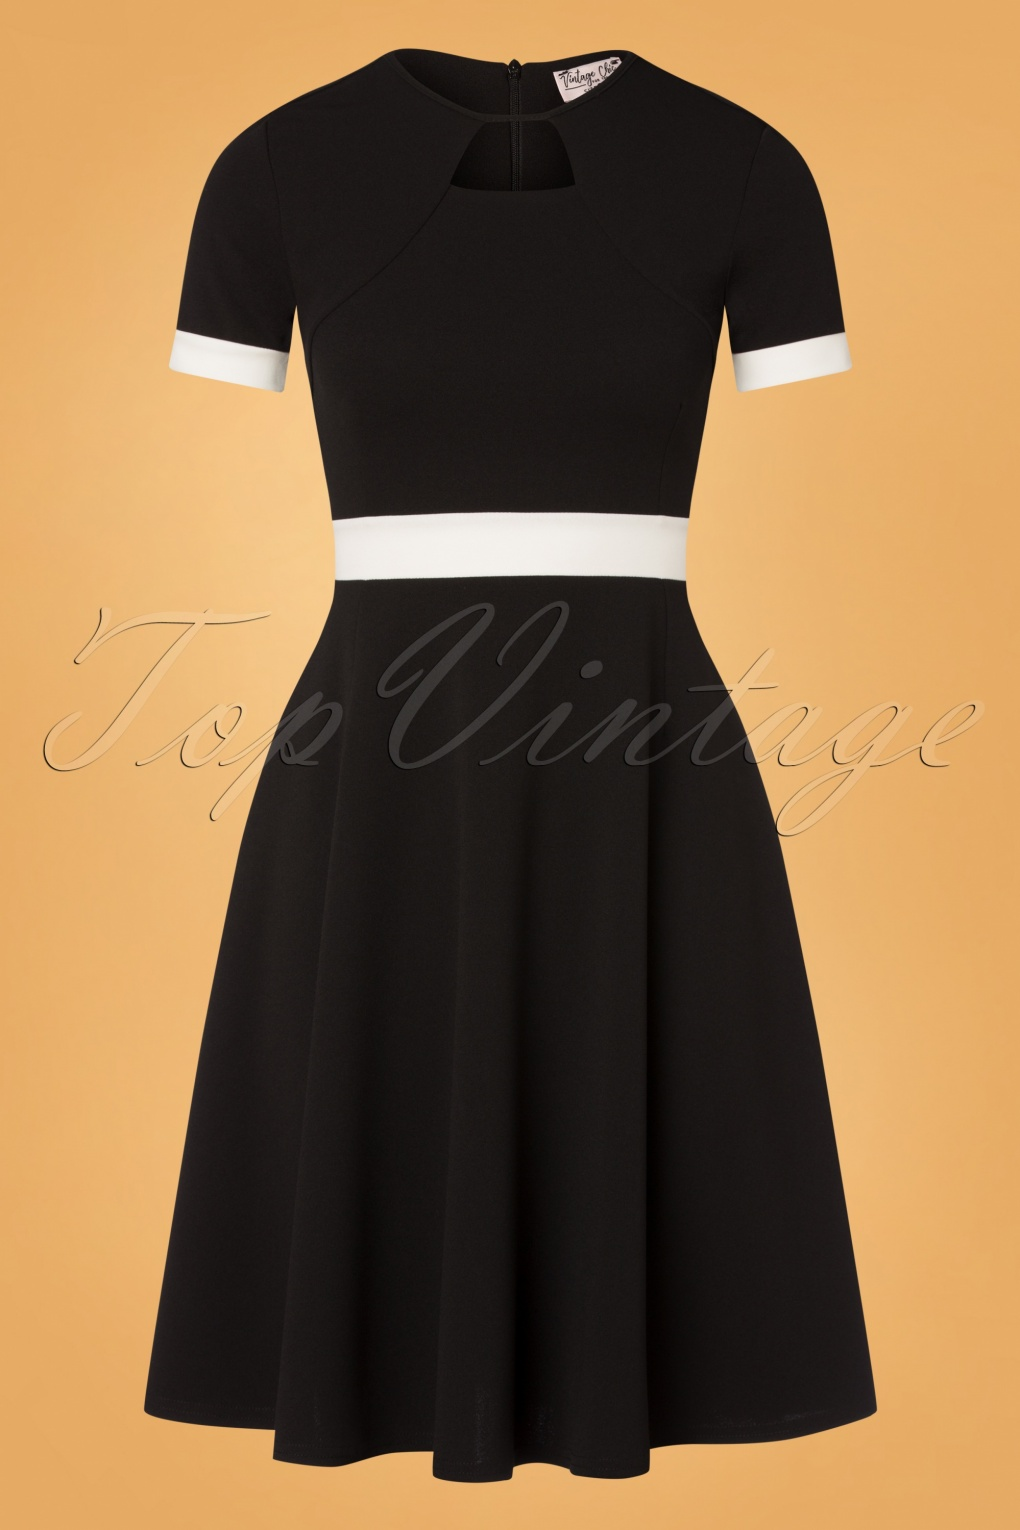 Vintage Style Dresses | Vintage Inspired Dresses 60s Verona Swing Dress in Black and White £57.73 AT vintagedancer.com